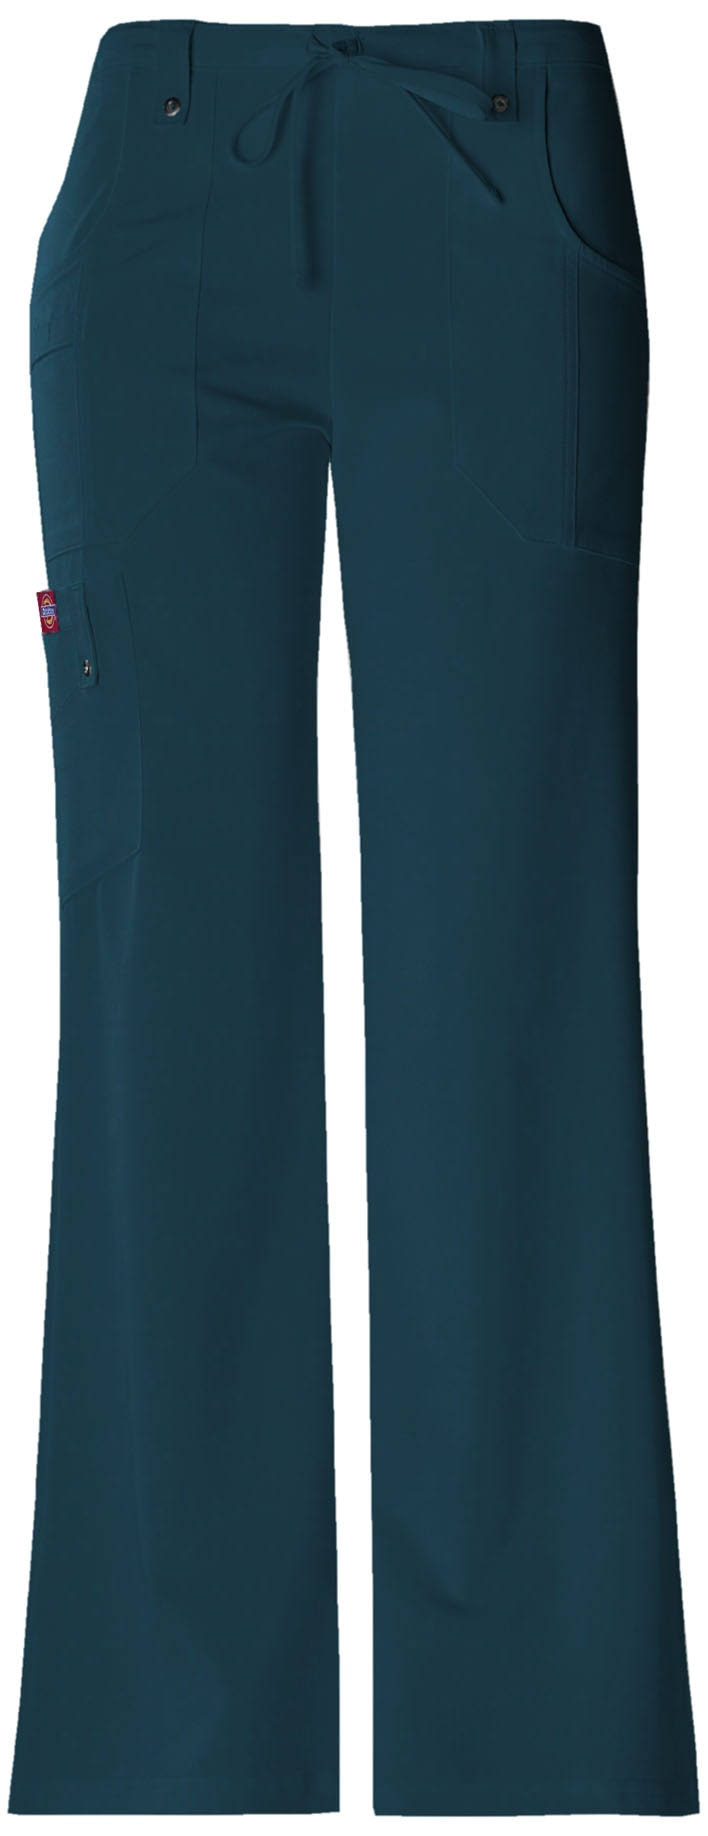 Dickies Women's Xtreme Stretch Fit Drawstring Flare Leg Pant - Caribbean, Medium